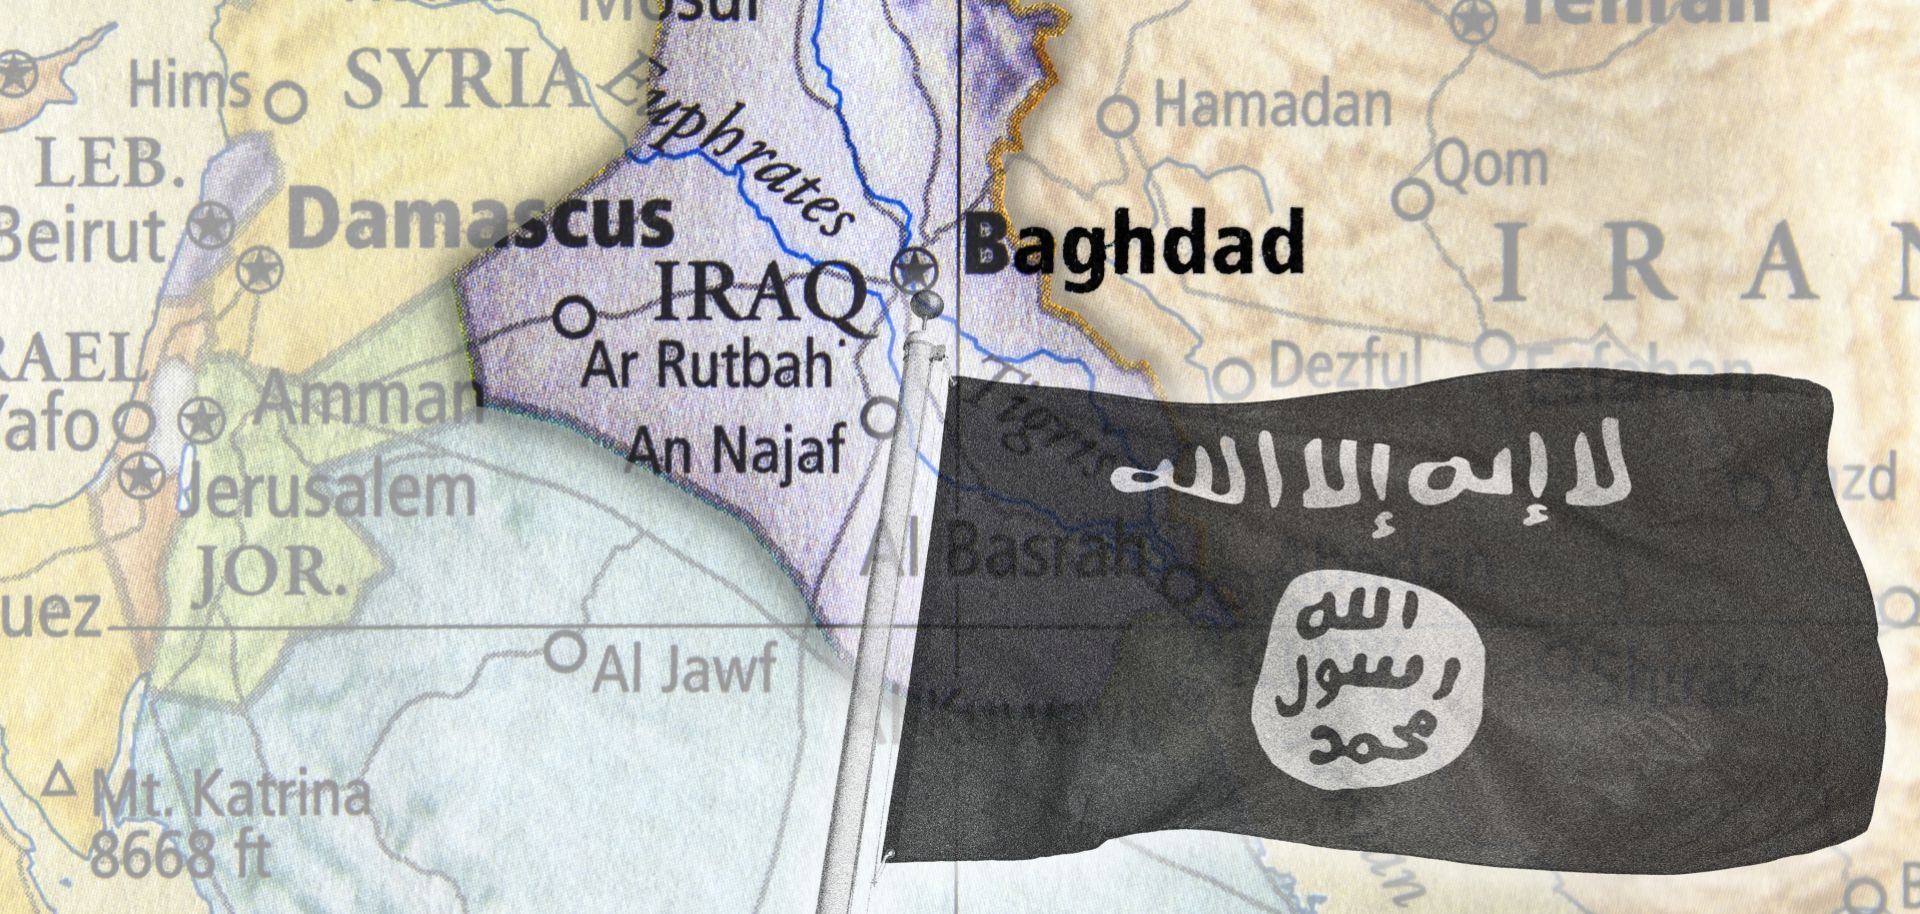 An image of the Islamic State flag overlays a map of Iraq.